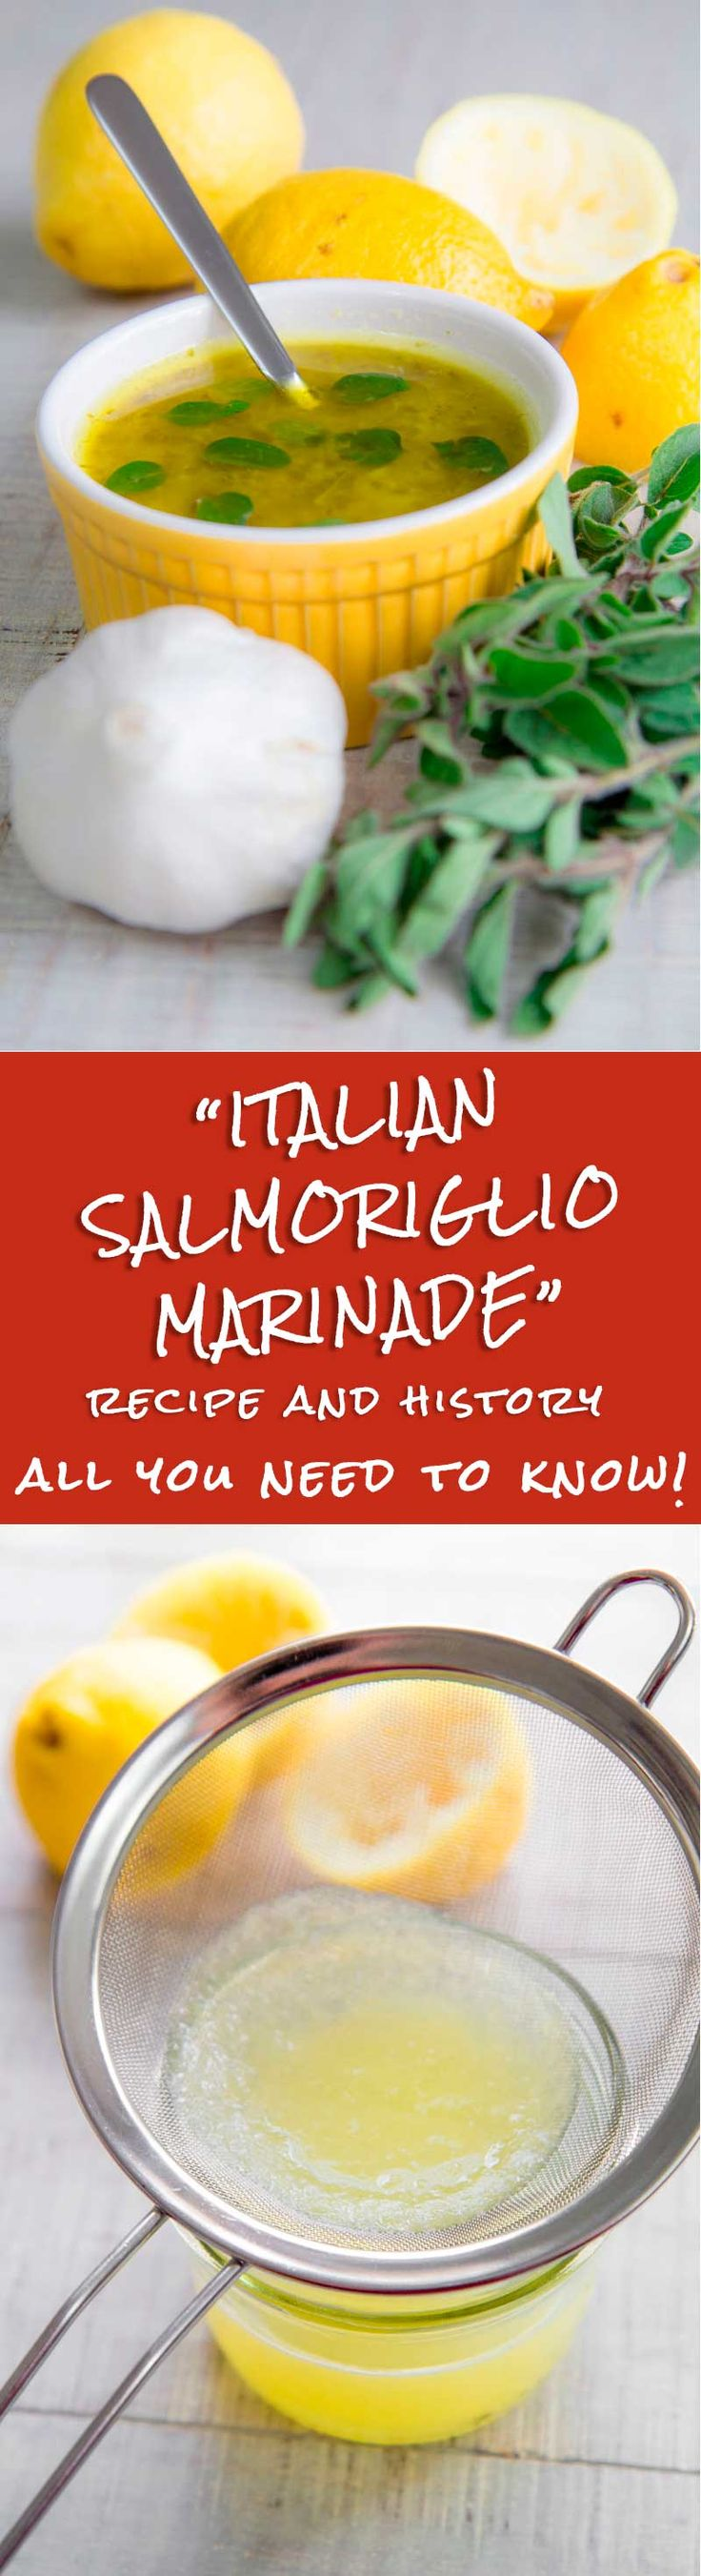 SALMORIGLIO RECIPE AND HISTORY - Italian lemon and olive oil marinade